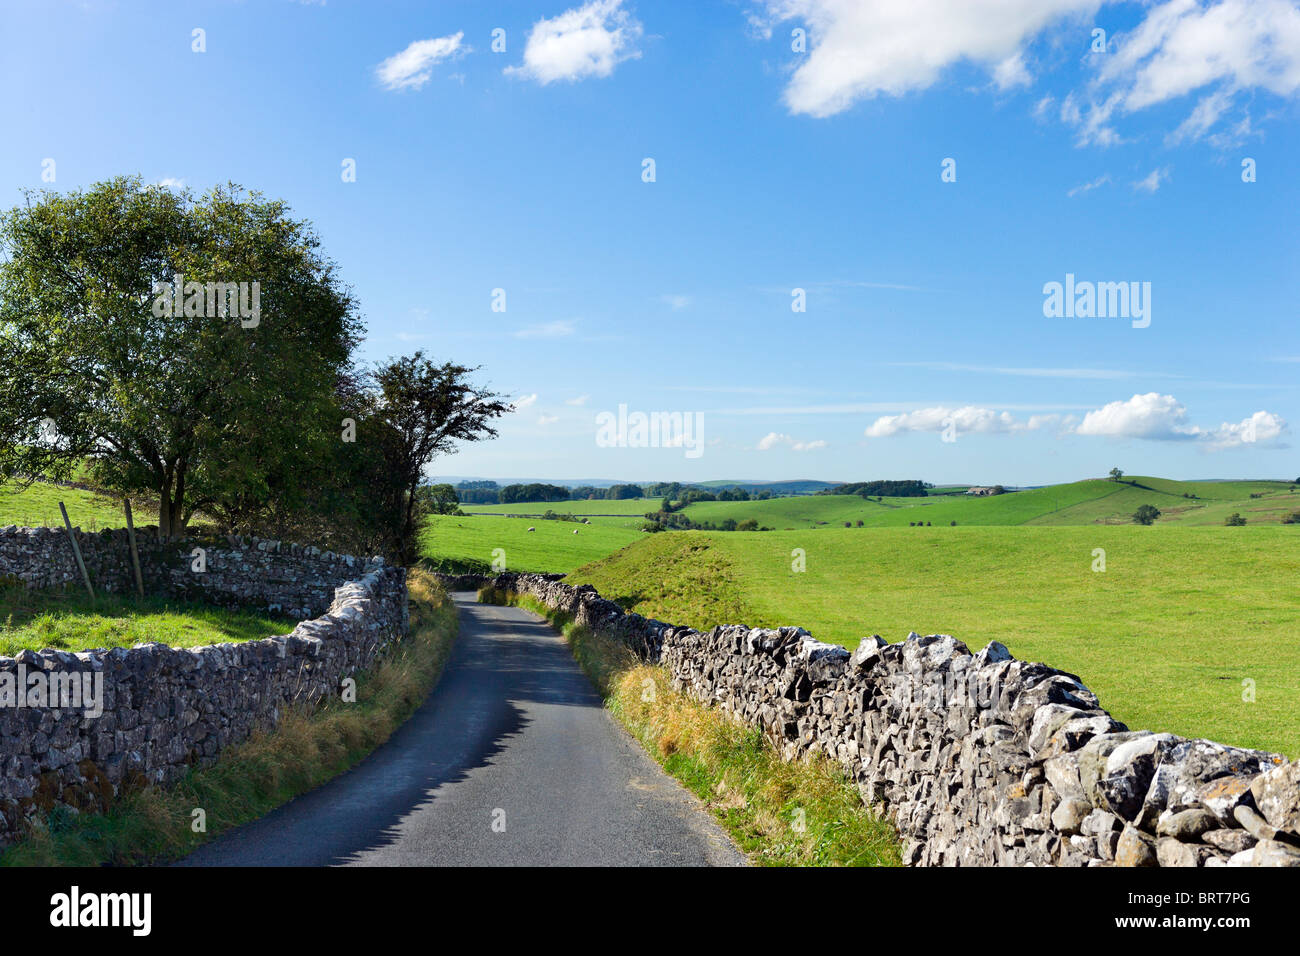 Country road between Airton and Hetton, Wharfedale, Yorkshire Dales National Park, England, UK - Stock Image